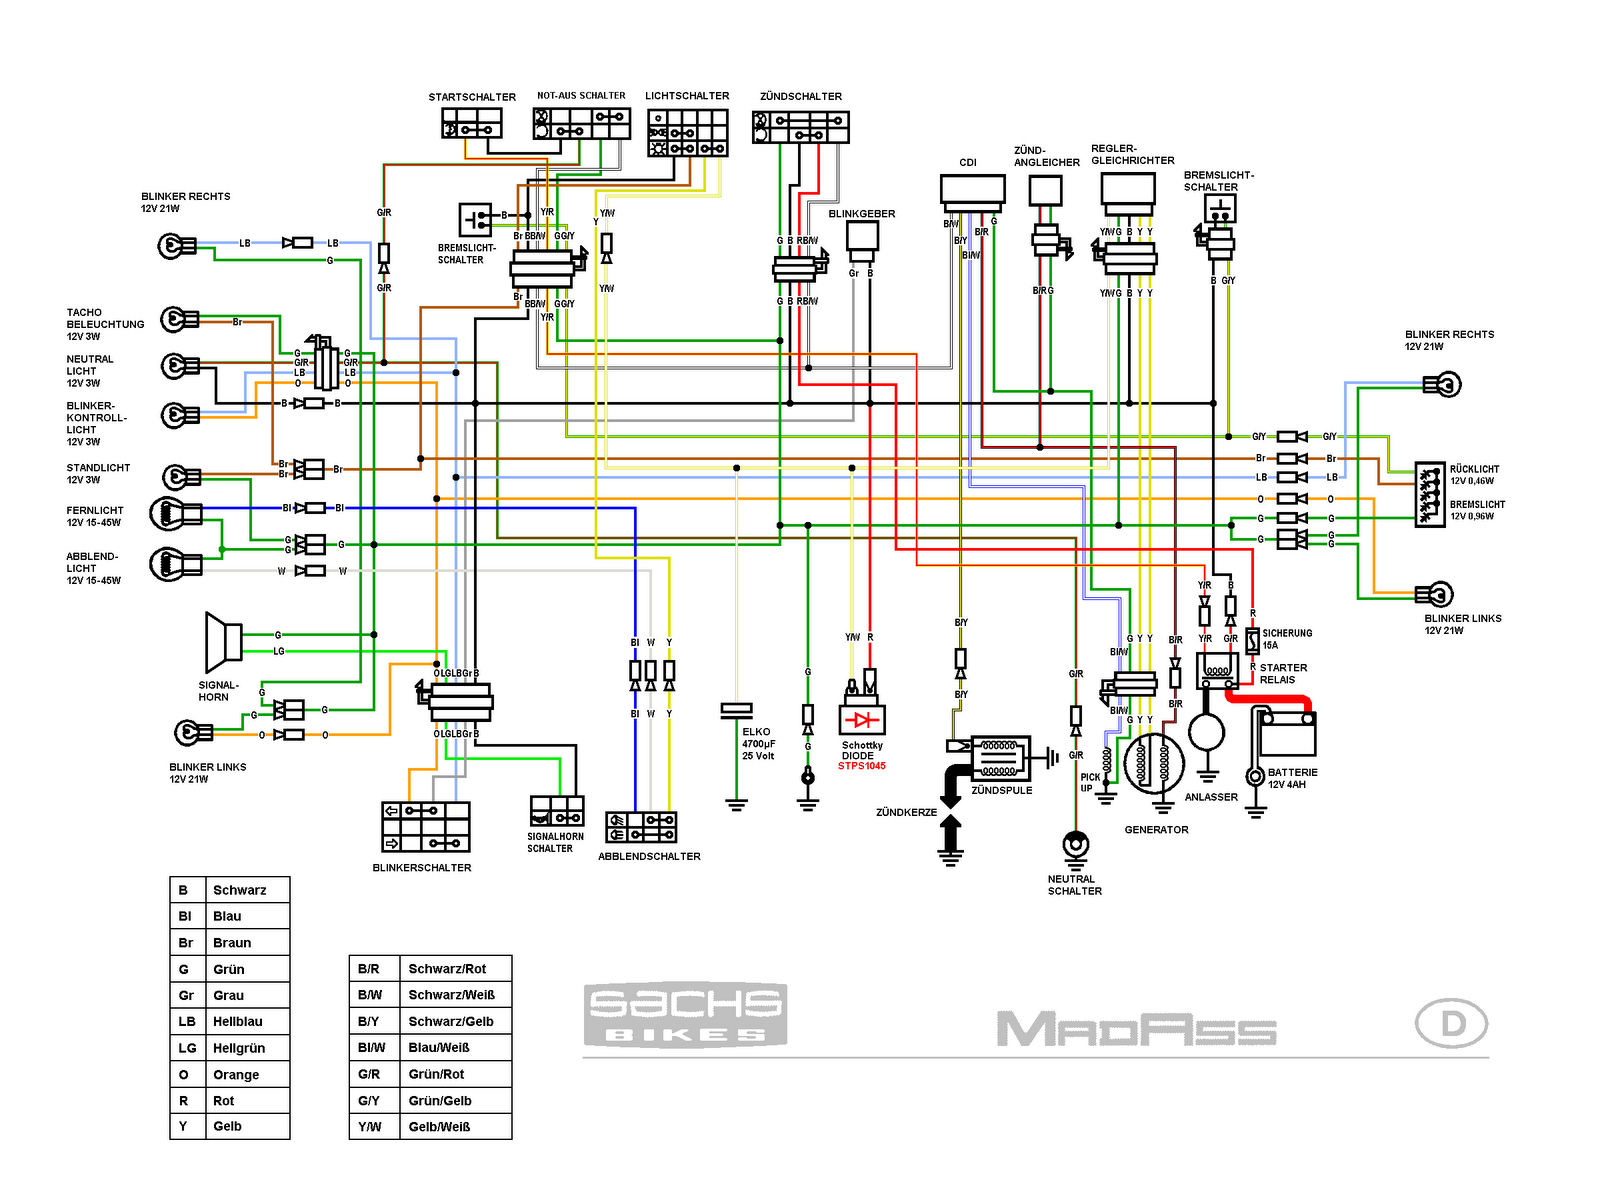 madass+wiring+with+schotky+diode mio soul i 125 cdi wiring diagram mio soul i maintenance \u2022 wiring yun ba wiring diagram at crackthecode.co